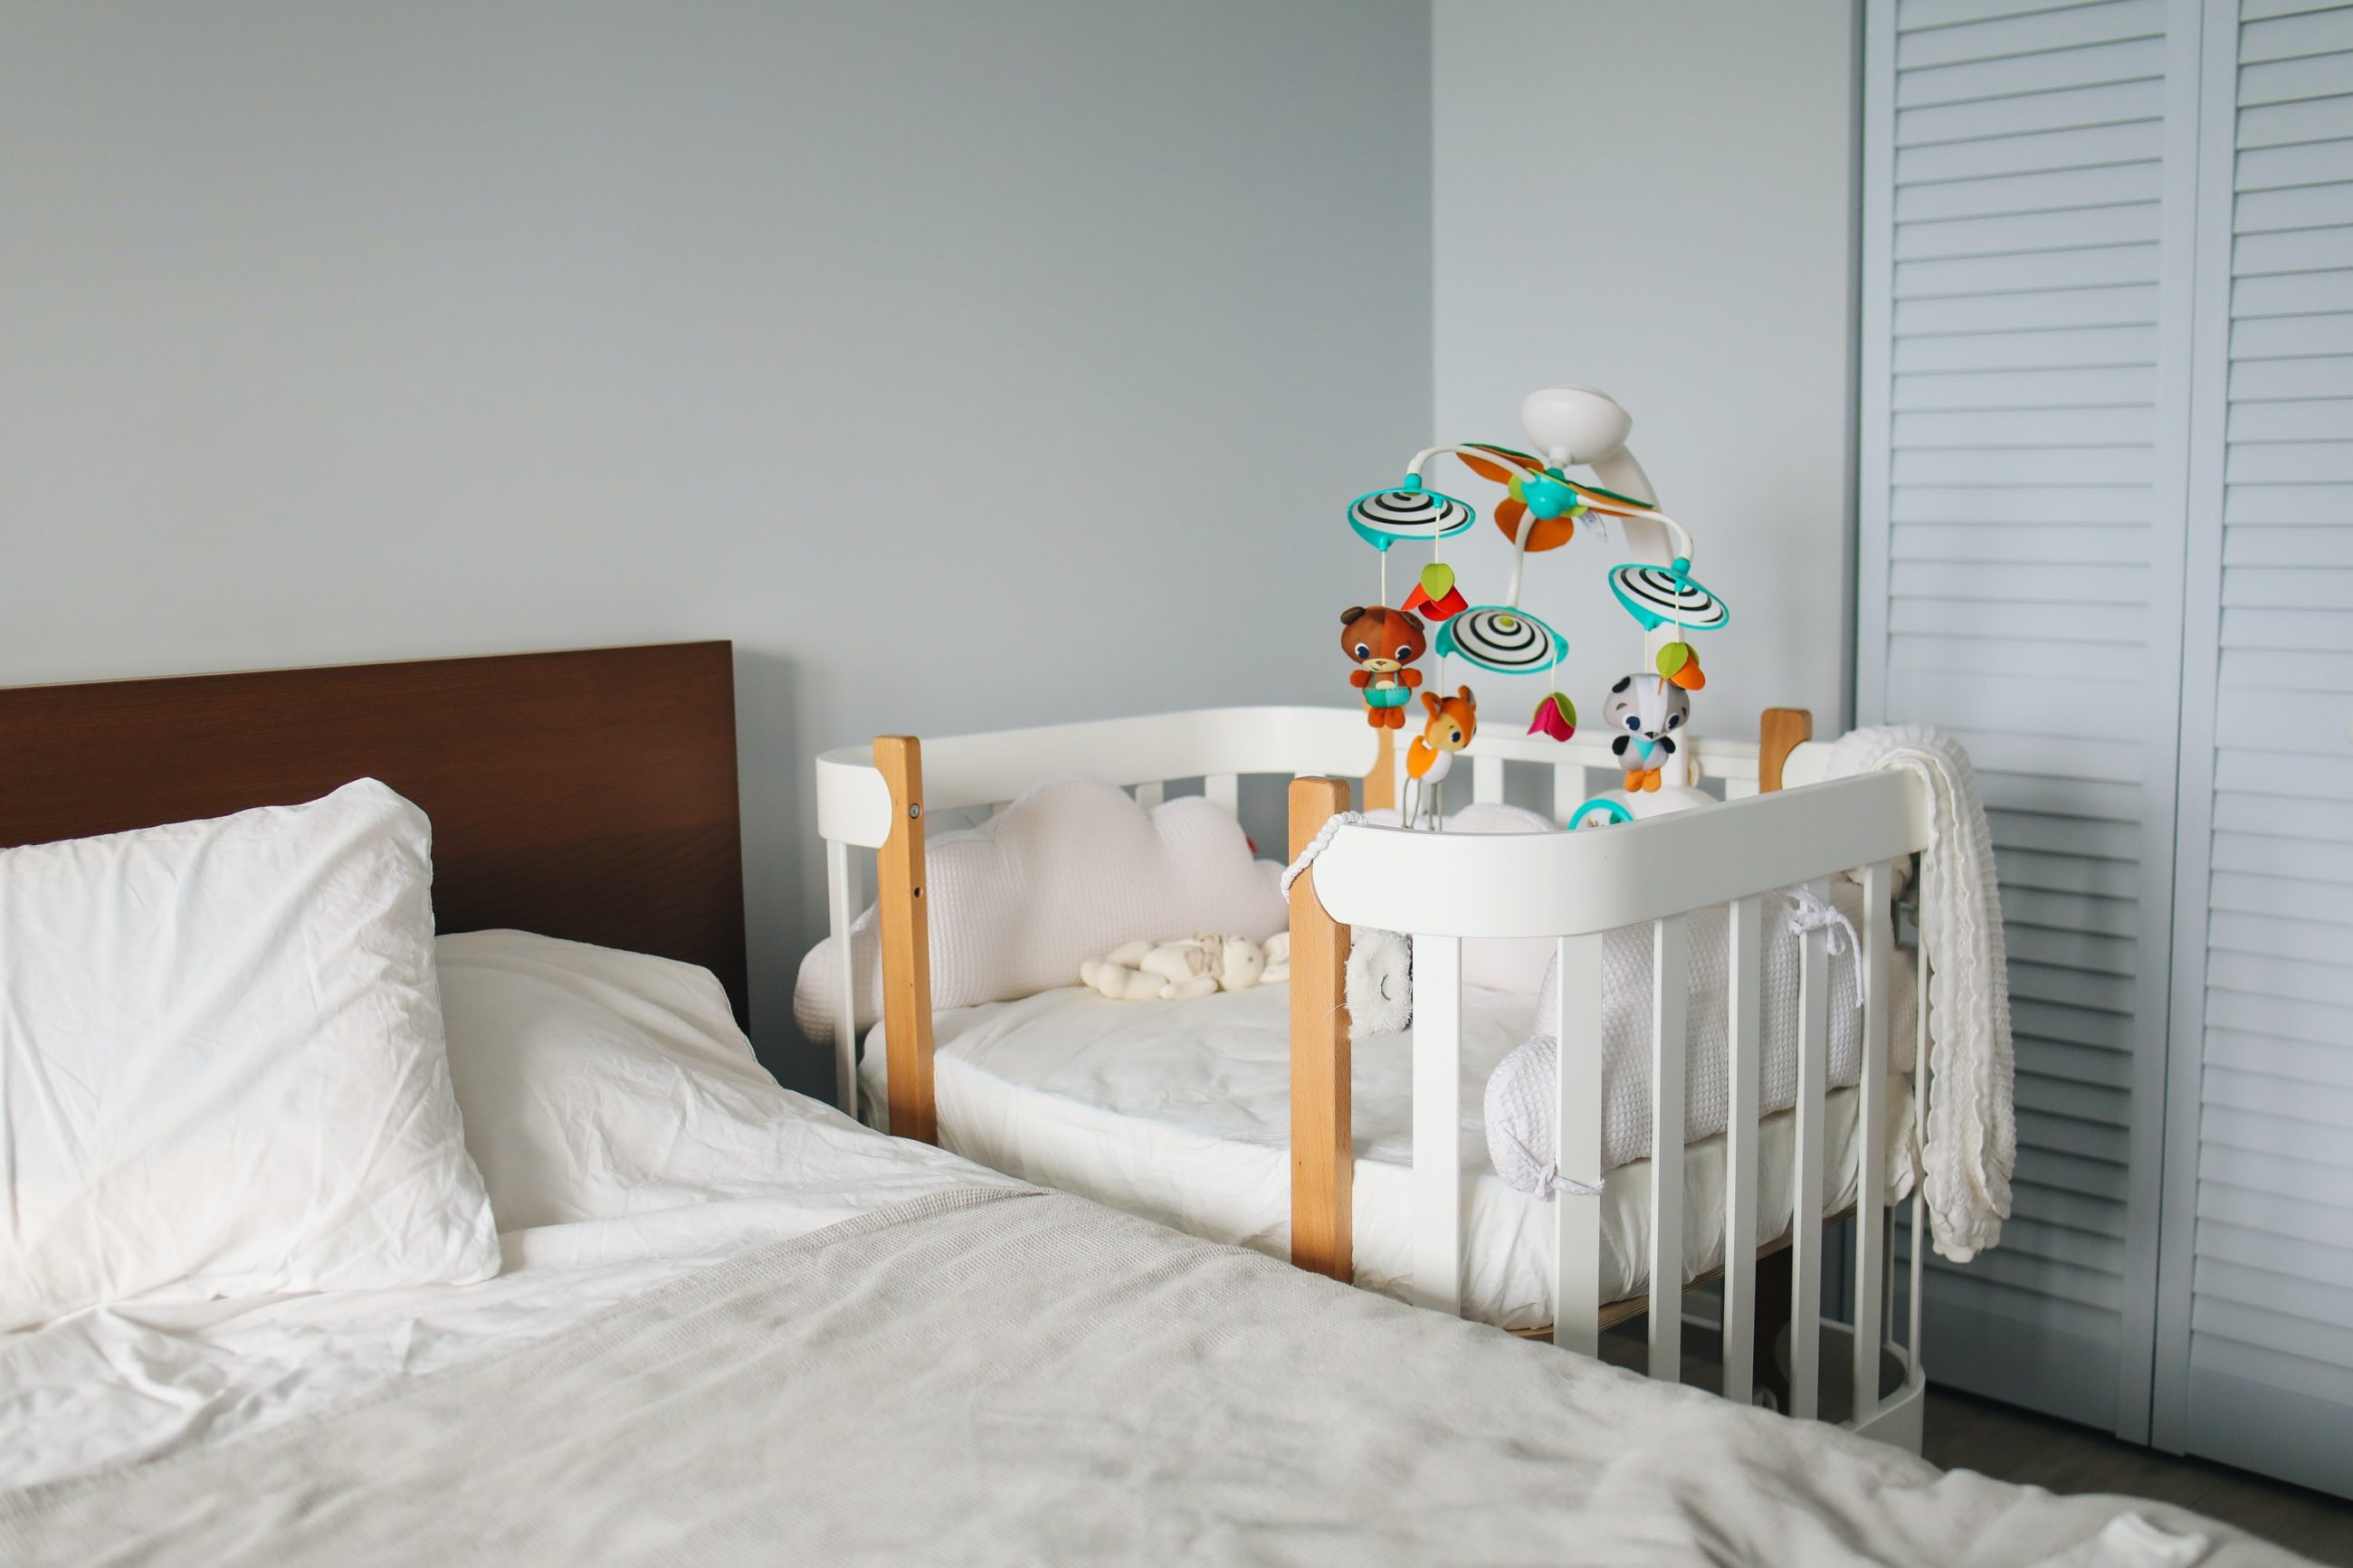 Sleep coaching: a way to improve the quality of family life.